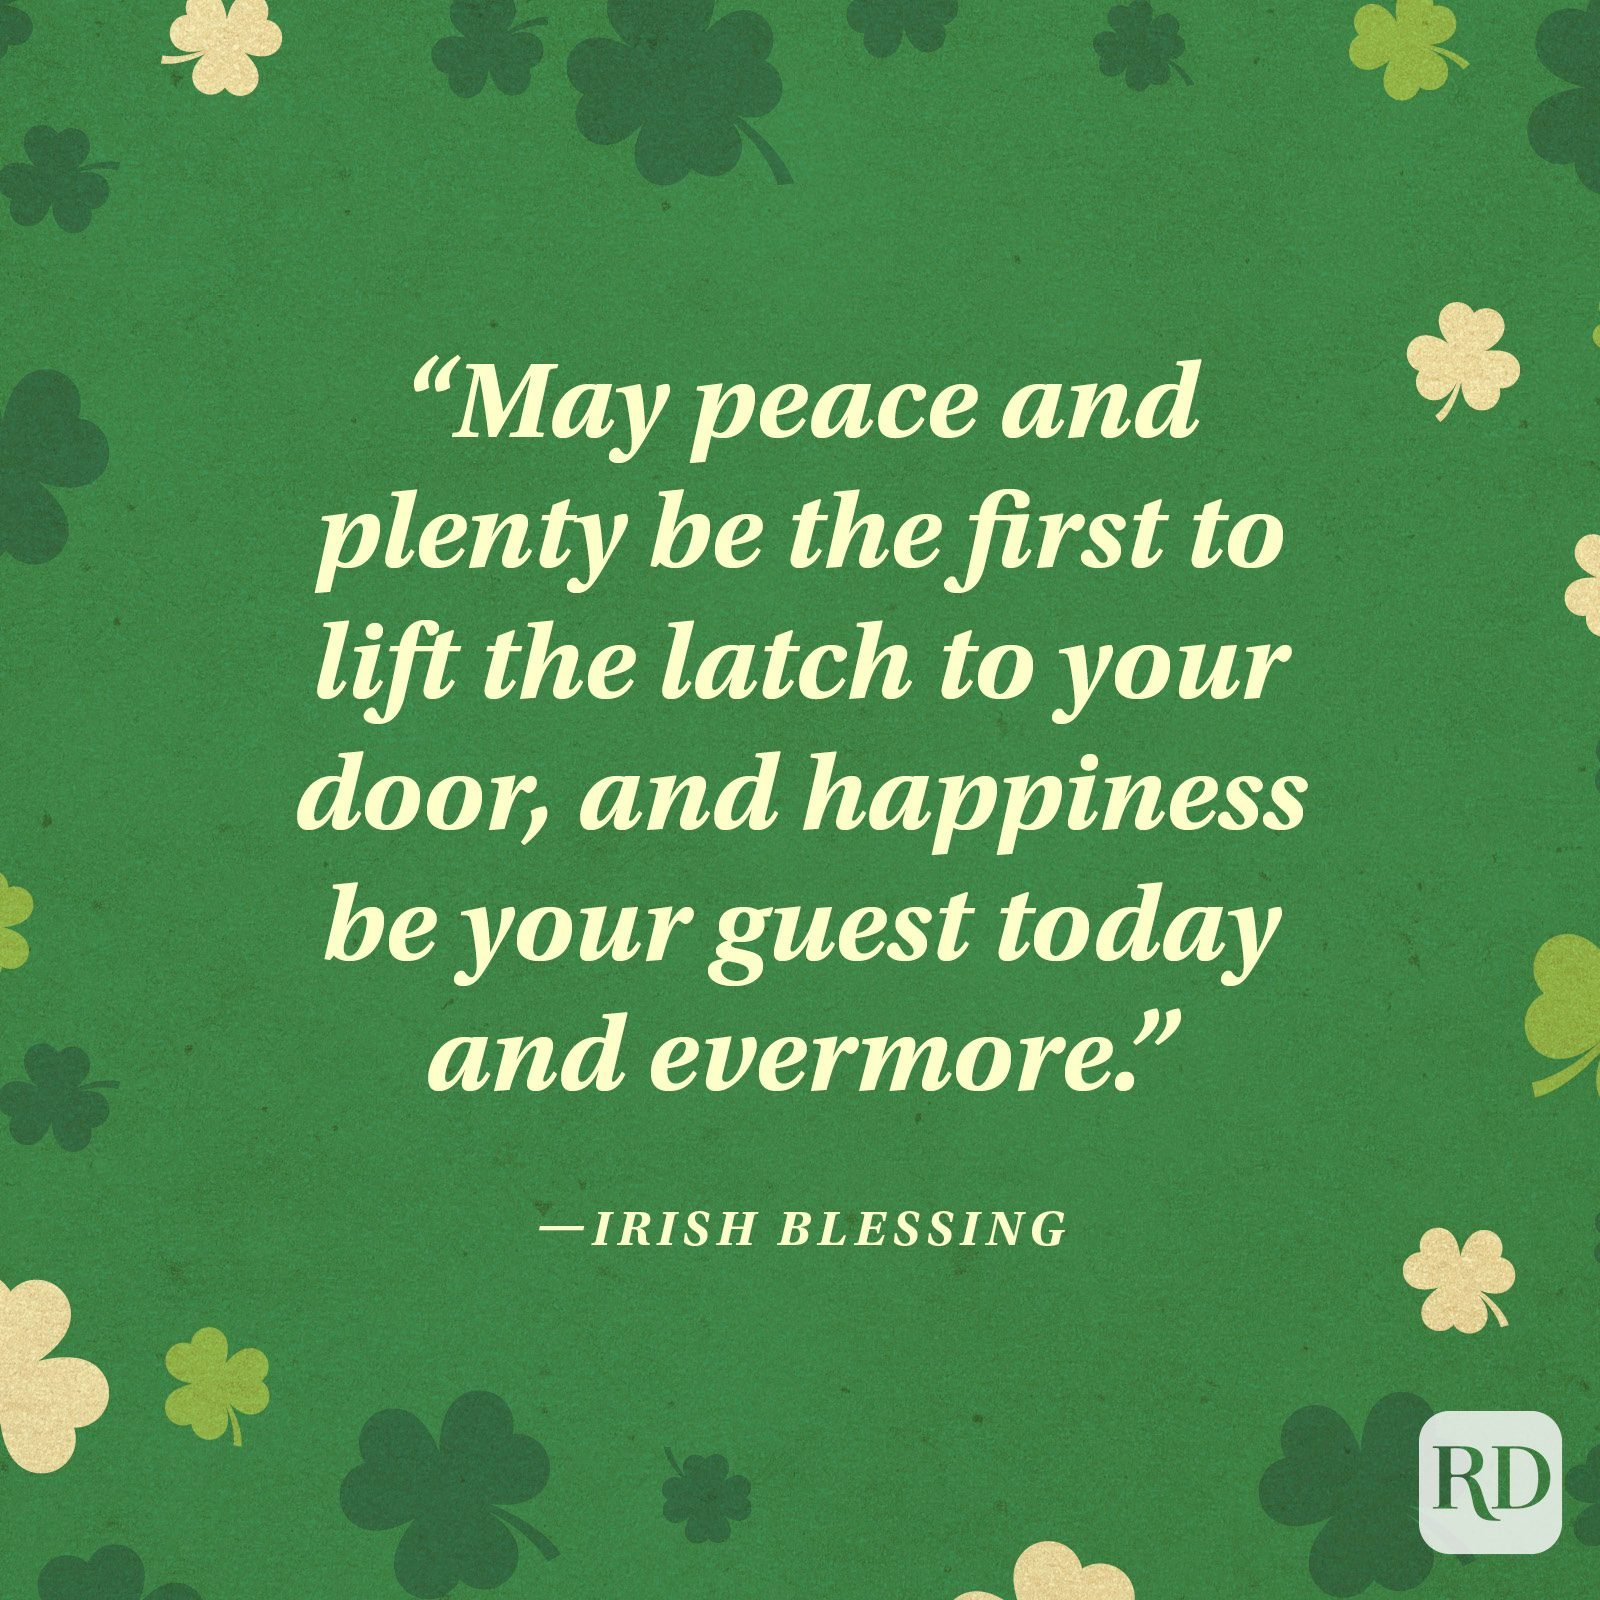 """May peace and plenty be the first to lift the latch to your door, and happiness be your guest today and evermore."" —Irish blessing"